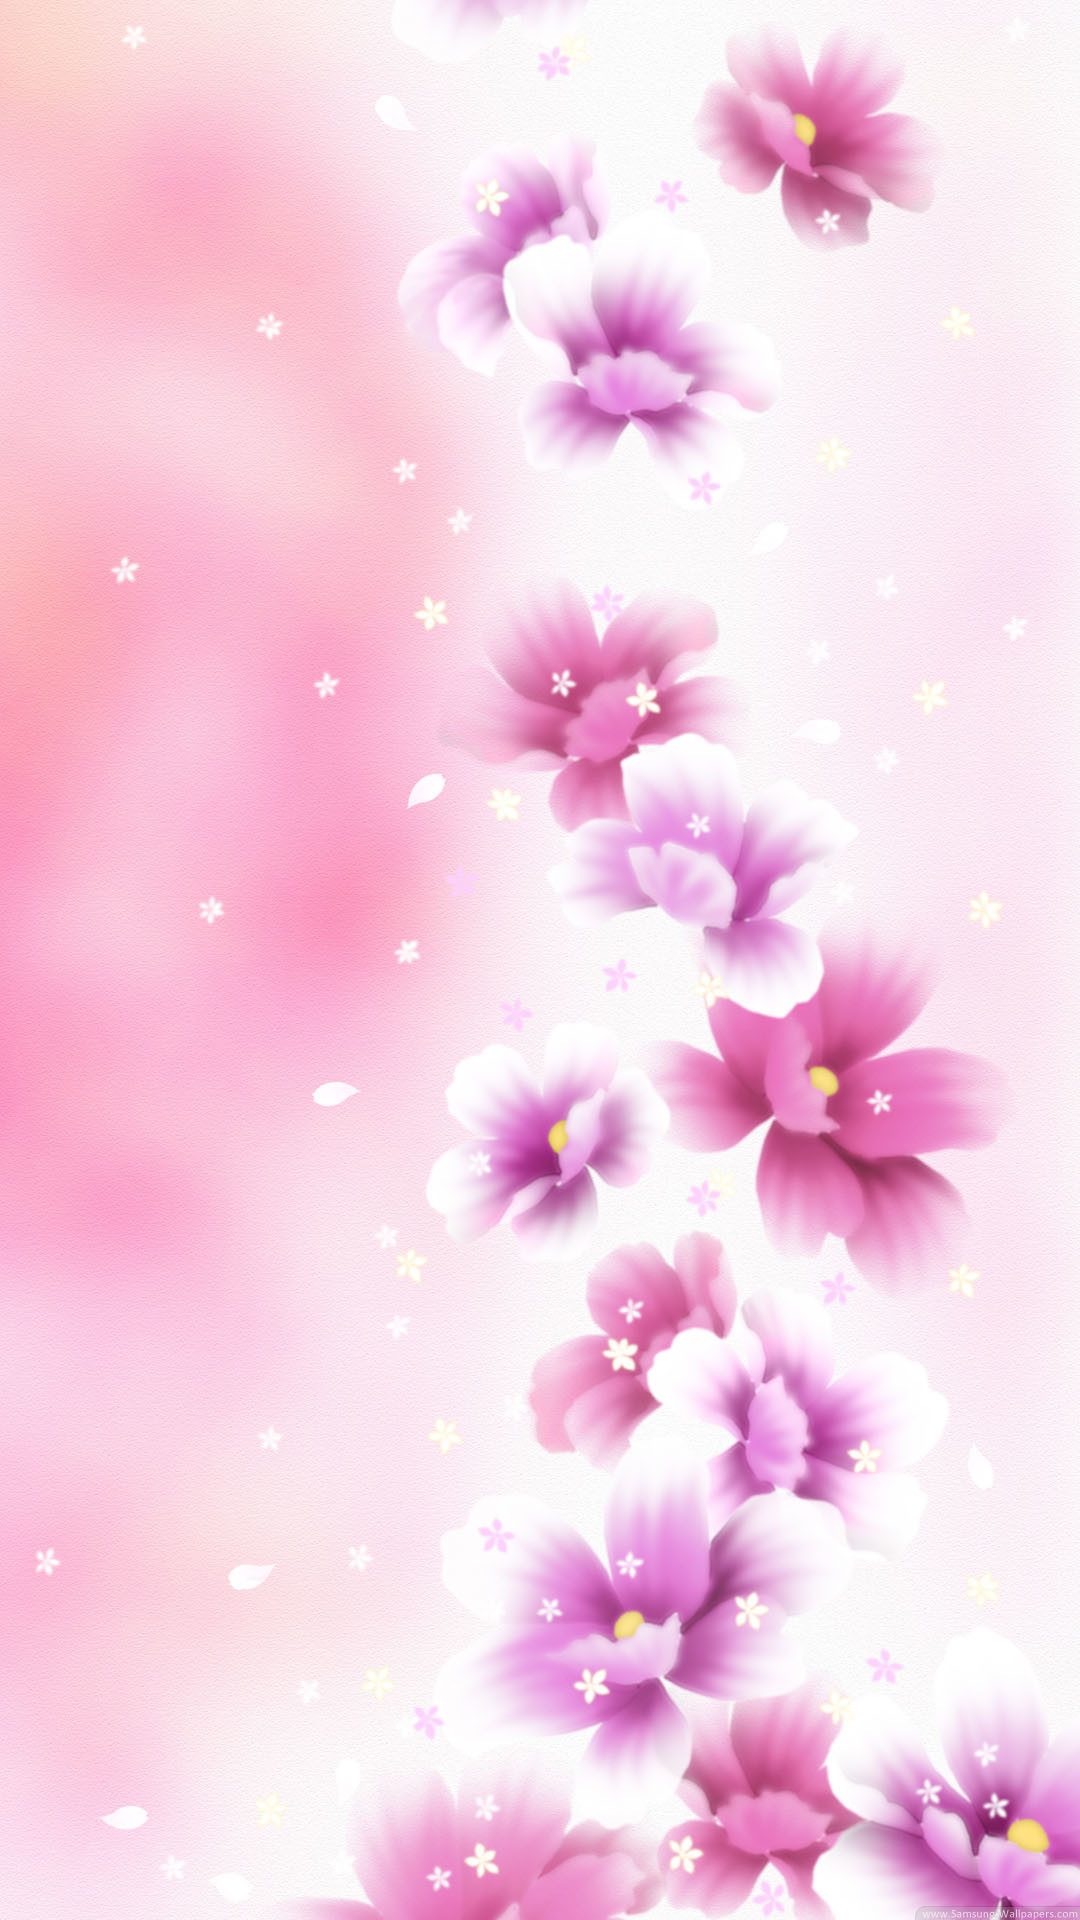 Res: 1080x1920, Cute pink Smartphone wallpaper